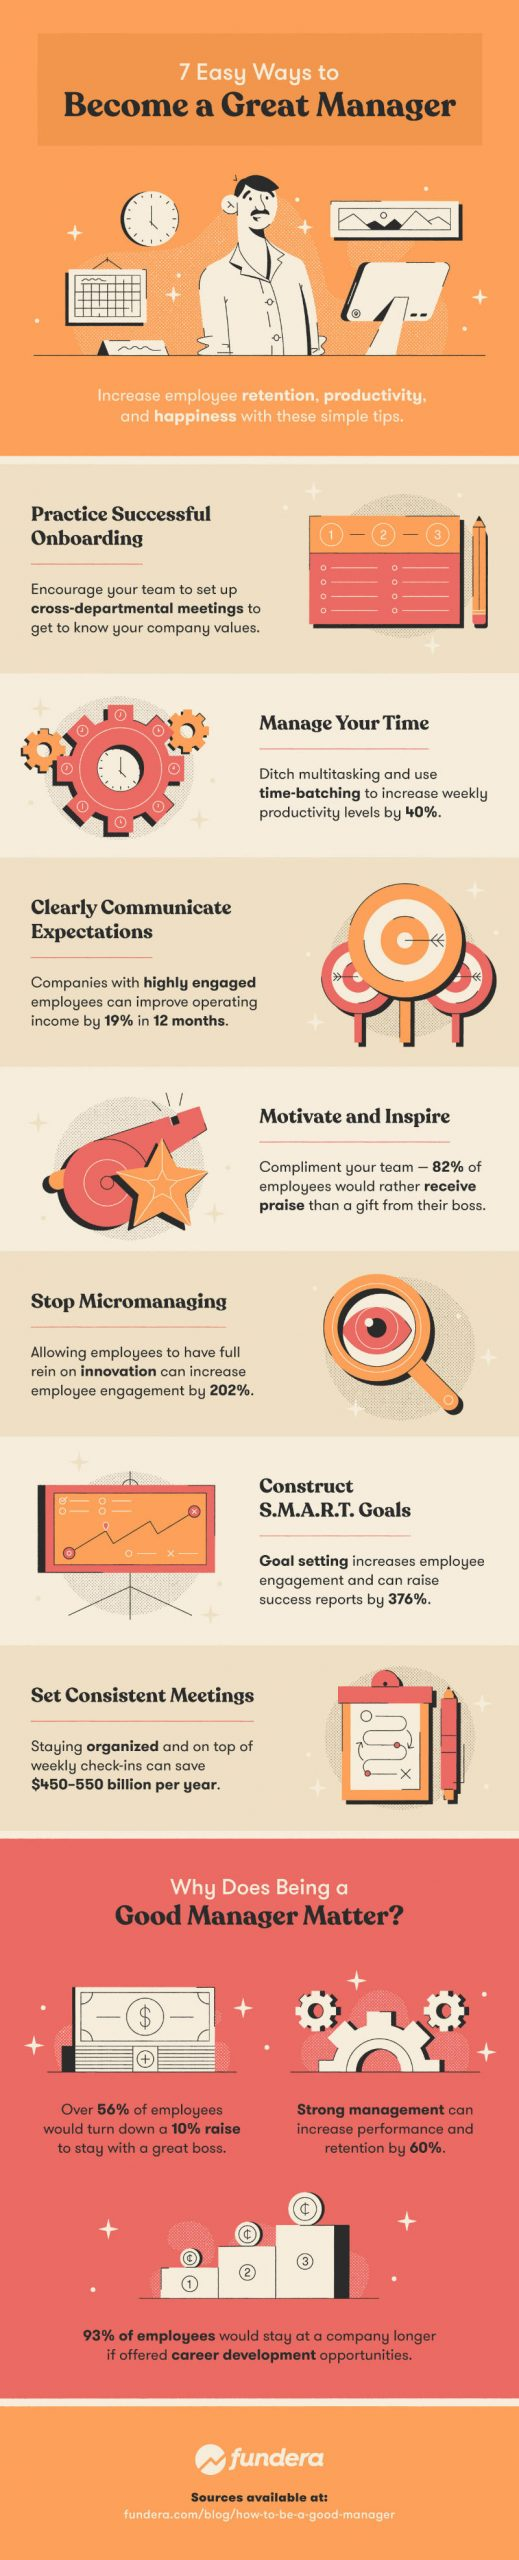 Ways to become a great Manager